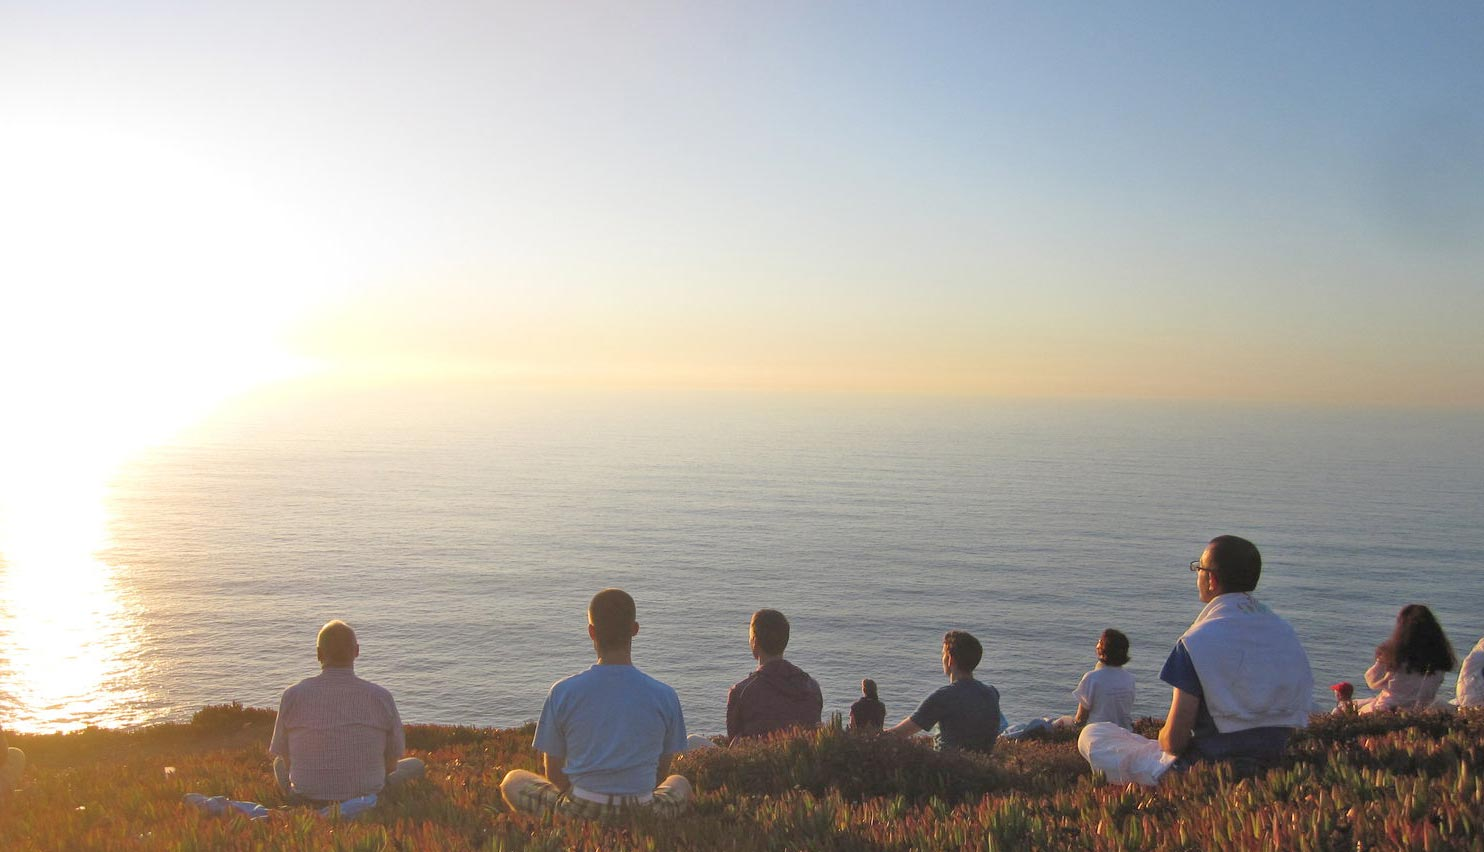 The growing influence of meditation and mindfulness